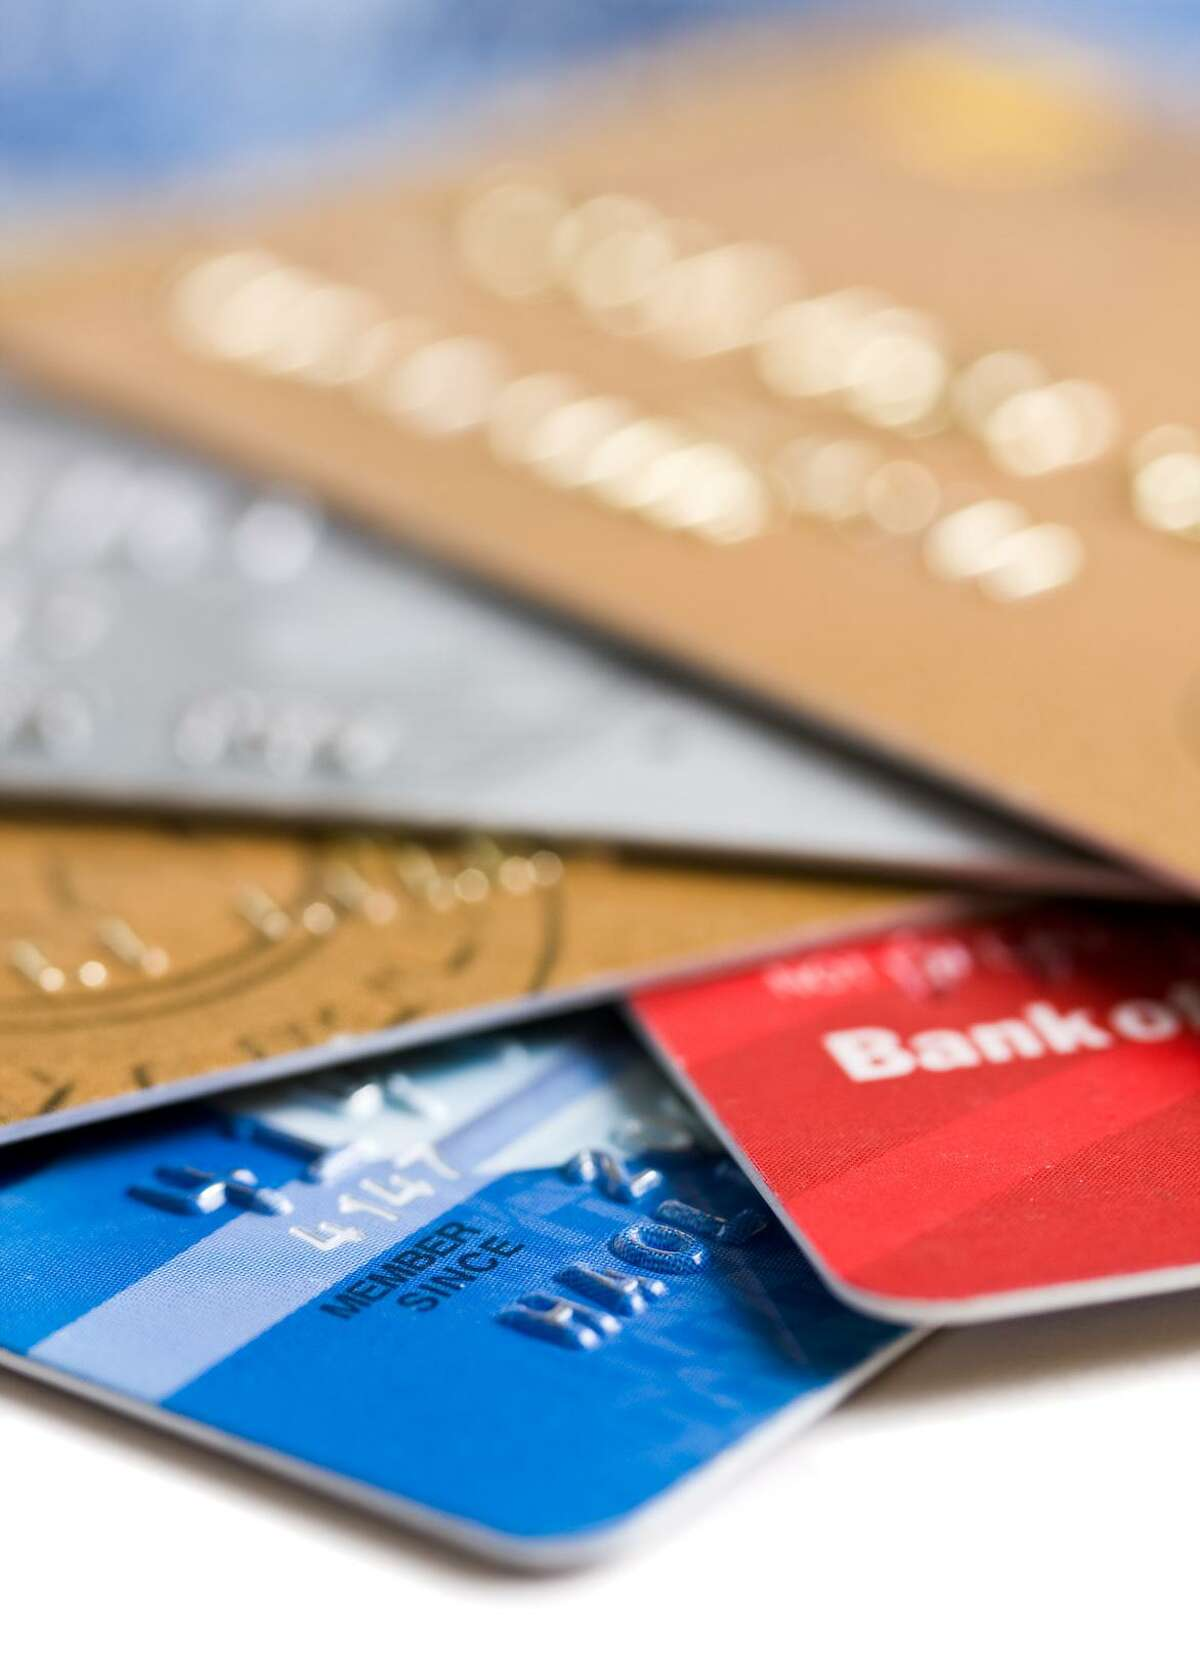 Credit cards can get some people into debt.